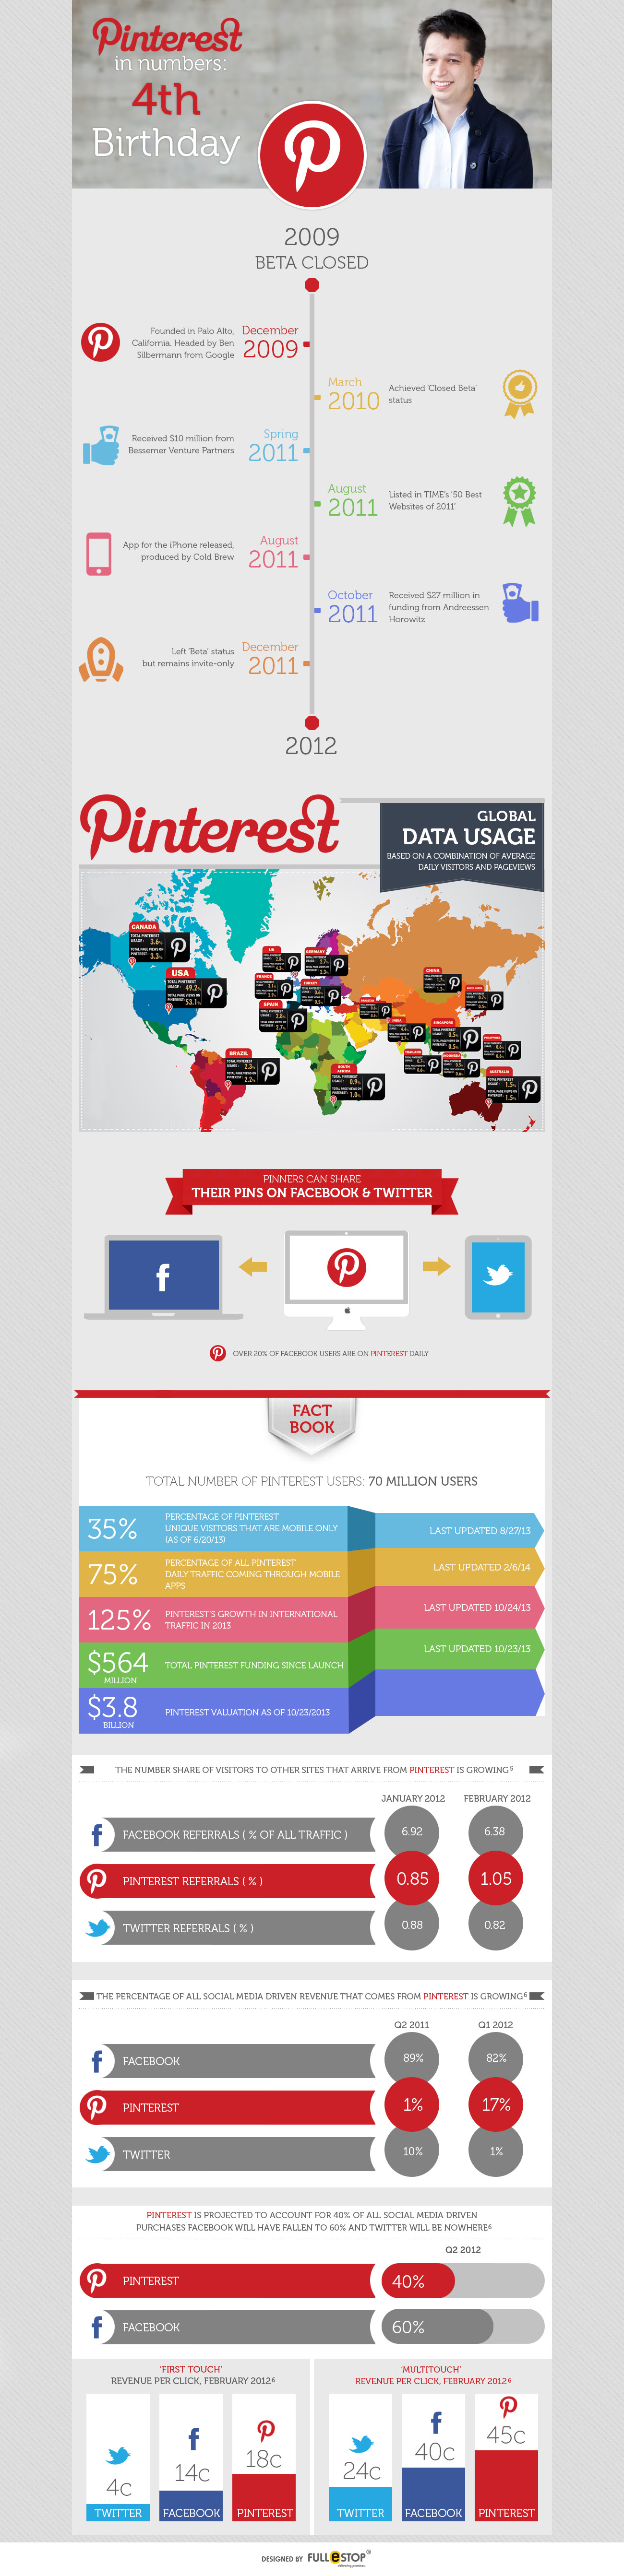 Infographic:   Pinterest In Numbers: 4th Birthday [Infographic]